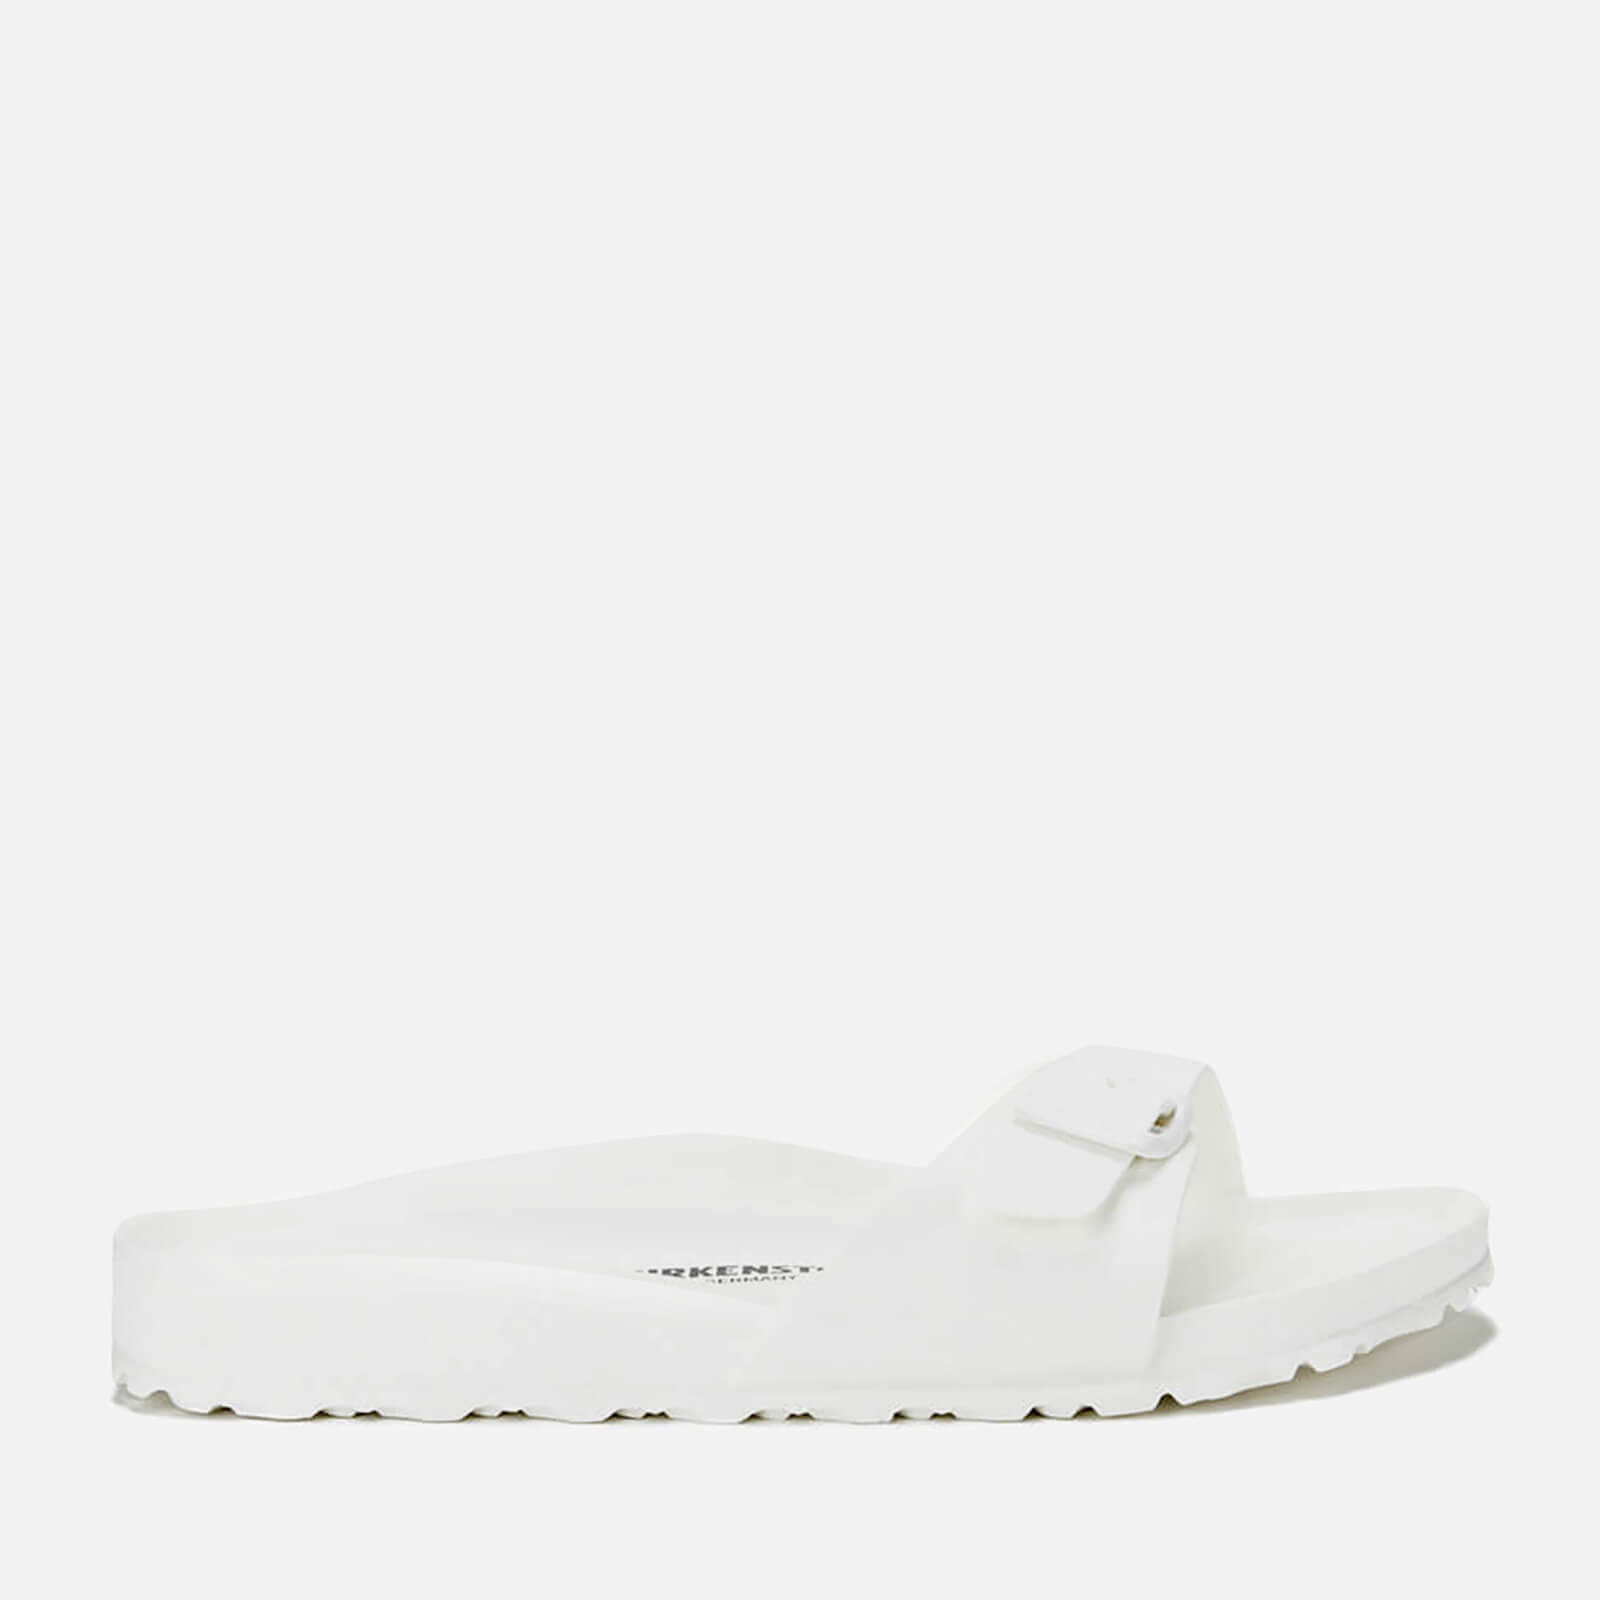 Birkenstock Women's Madrid Eva Single Strap Sandals - White - EU 39/UK 5.5